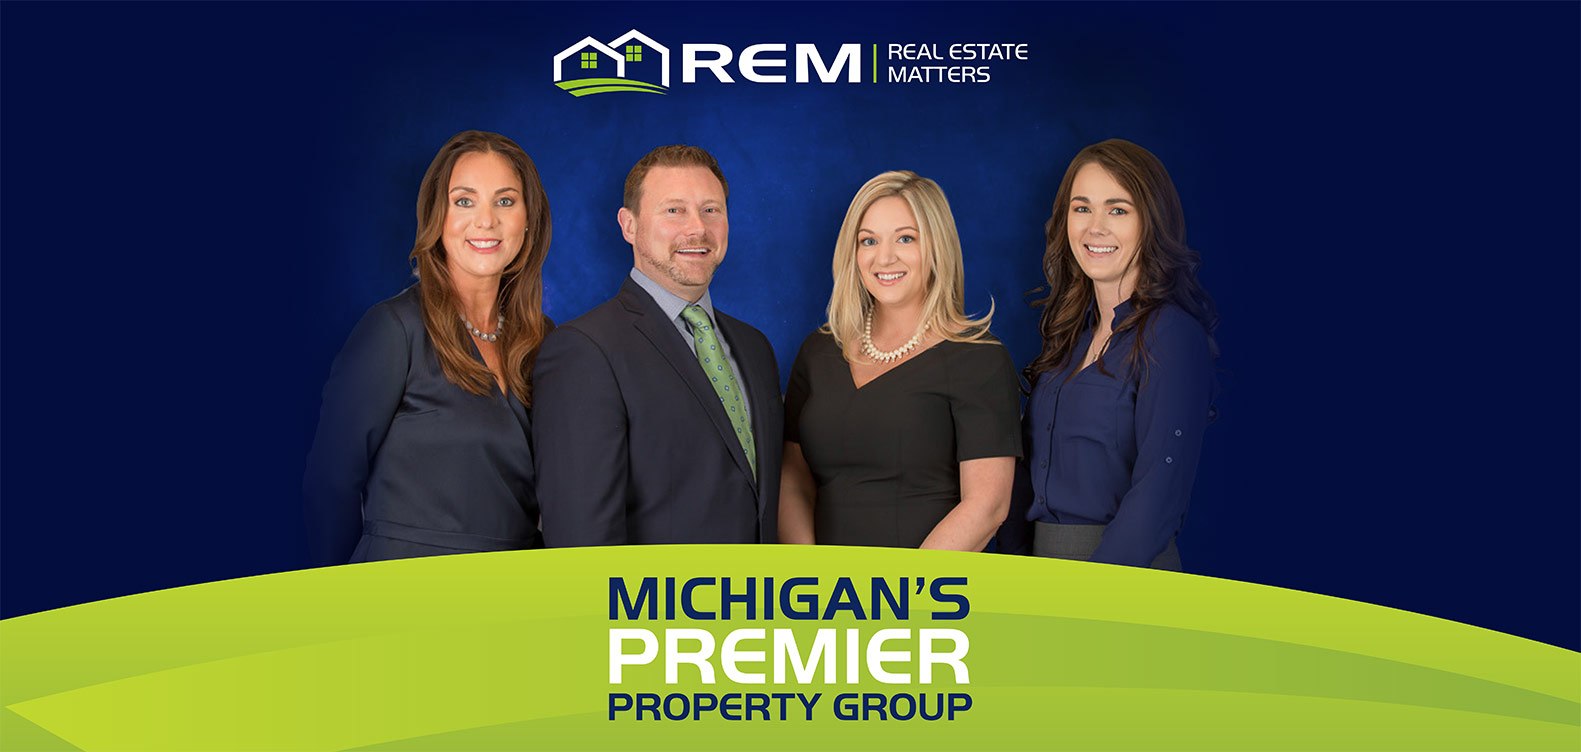 REAL ESTATE MATTERS - MICHIGAN'S PREMIER PROPERTY GROUP